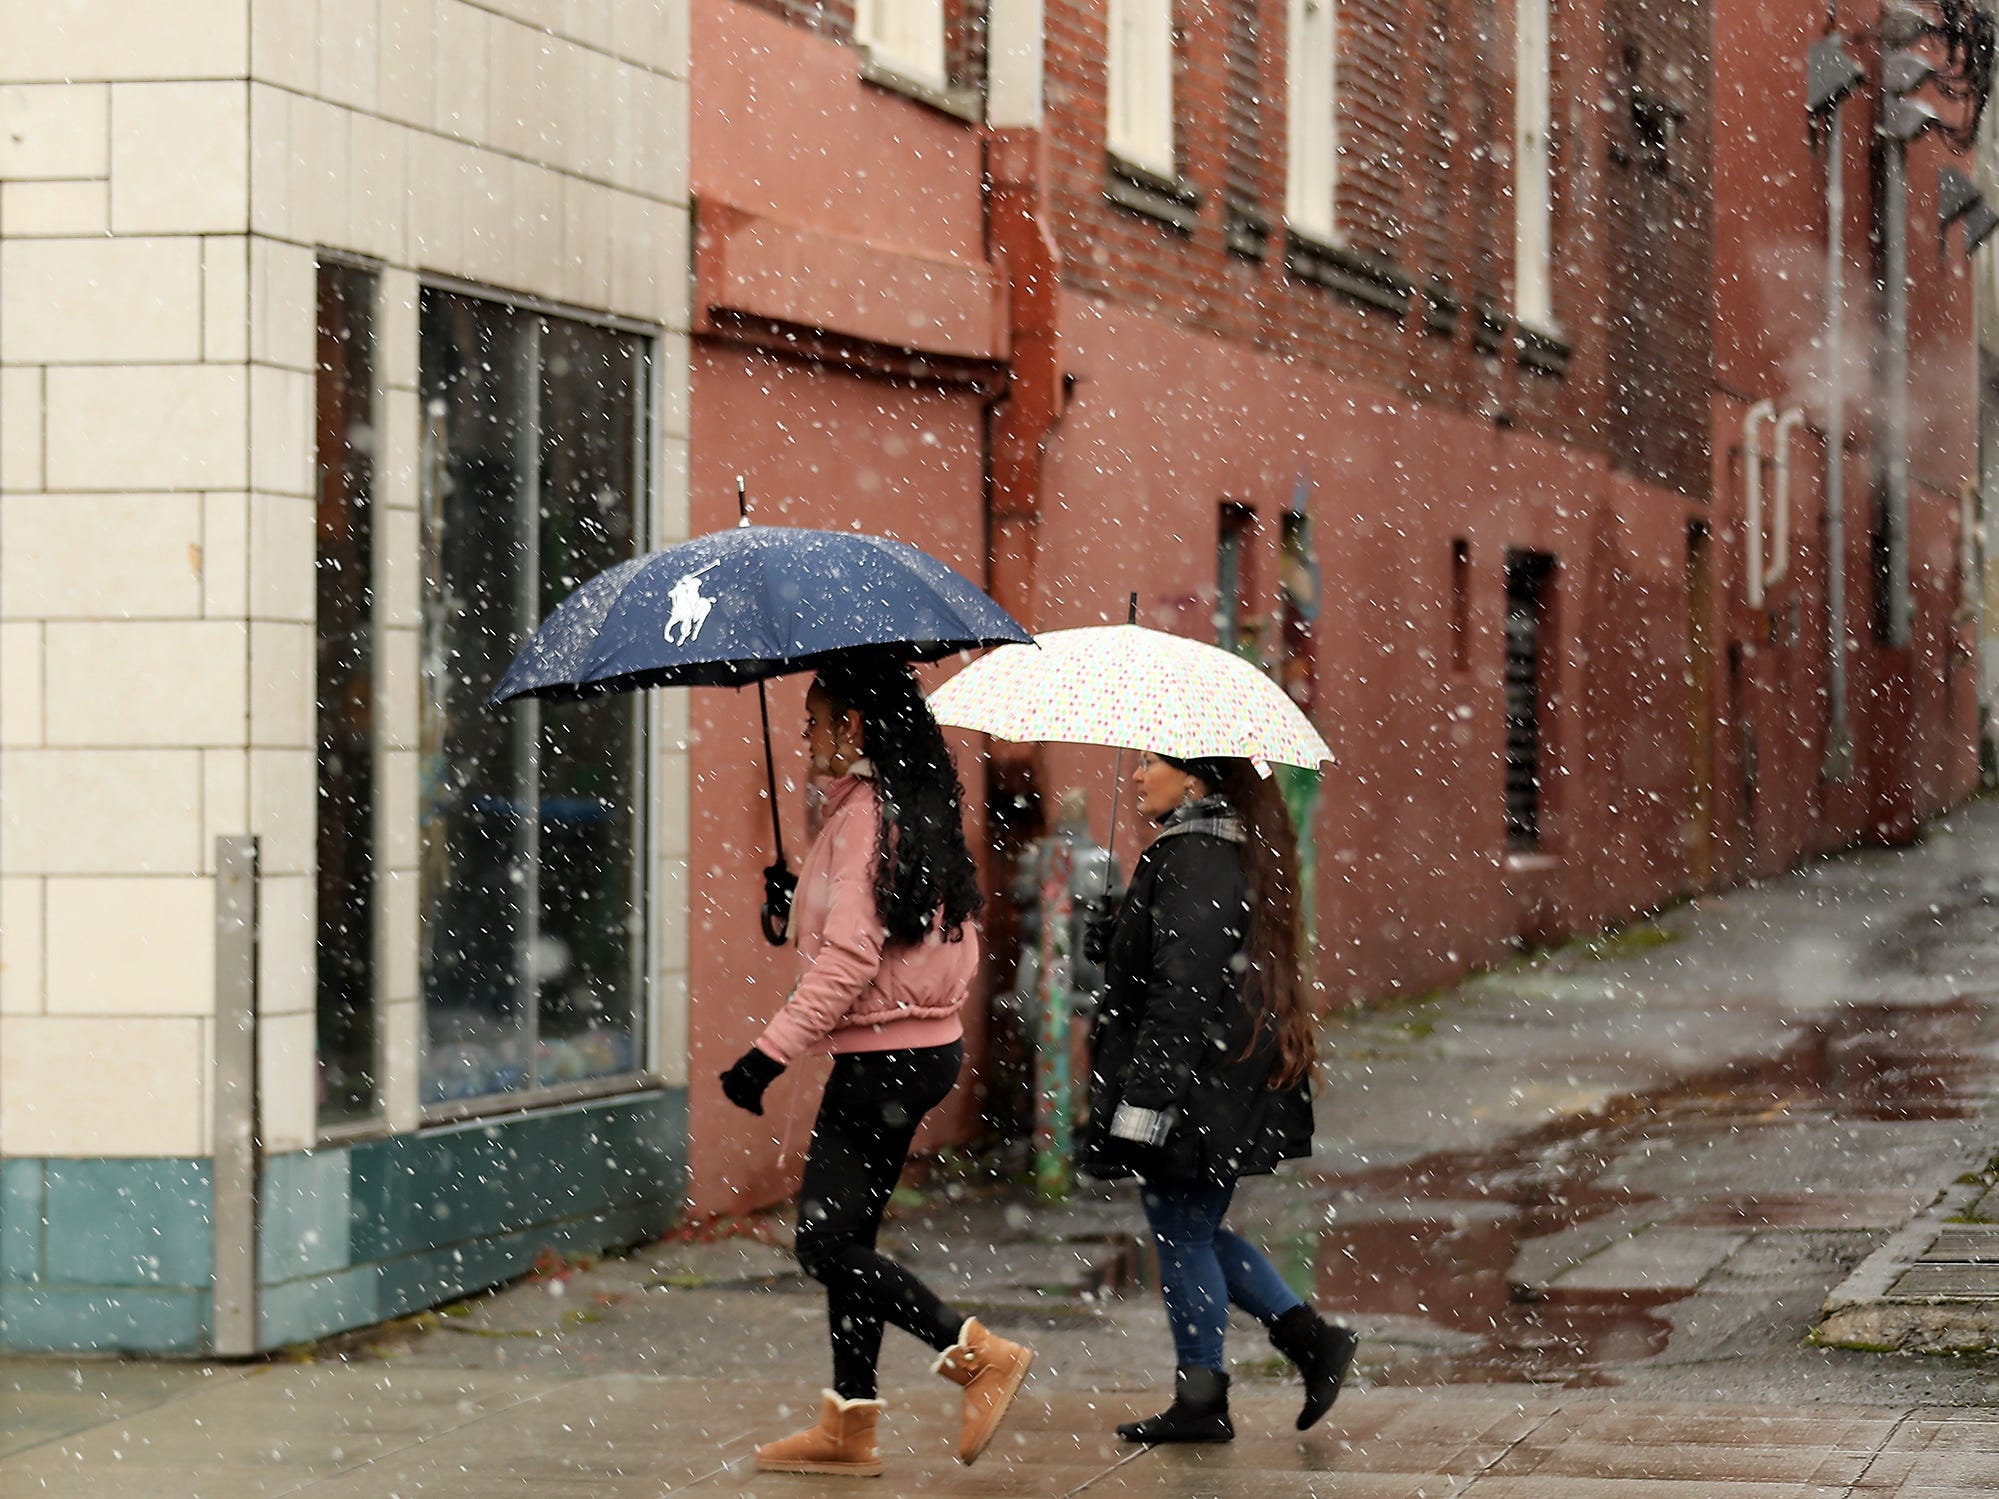 A pair of pedestrians carry umbrellas as the snow falls along Pacific Avenue in downtown Bremerton on Friday, March 8, 2019.